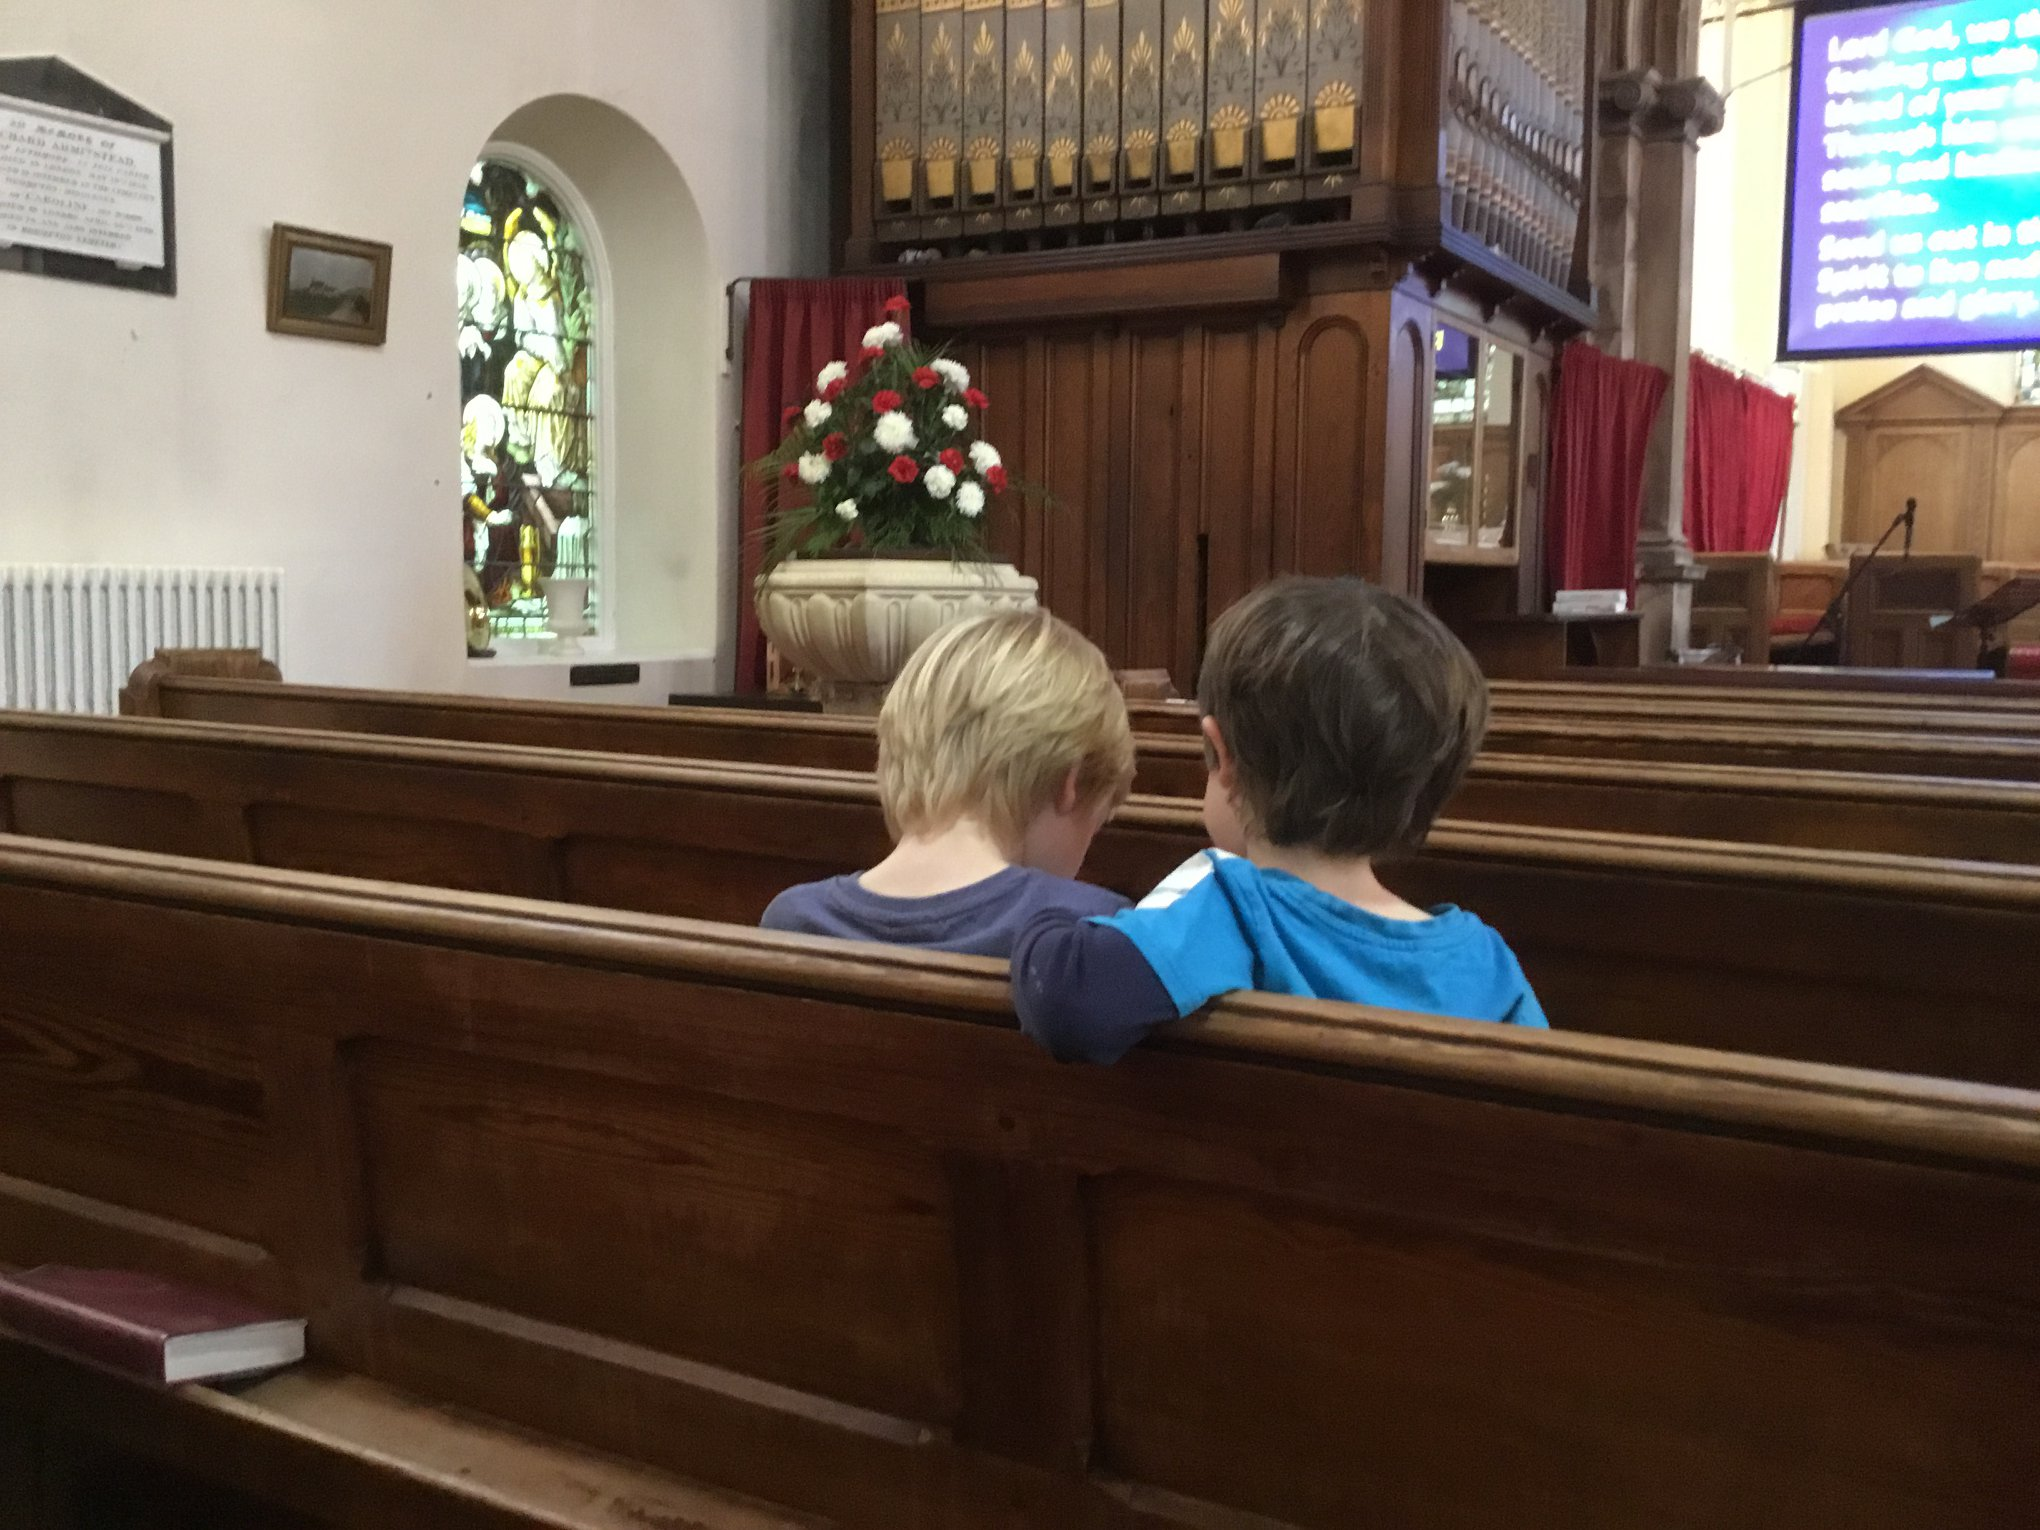 sundays - Find out what happens on Sundays at St Bridget's